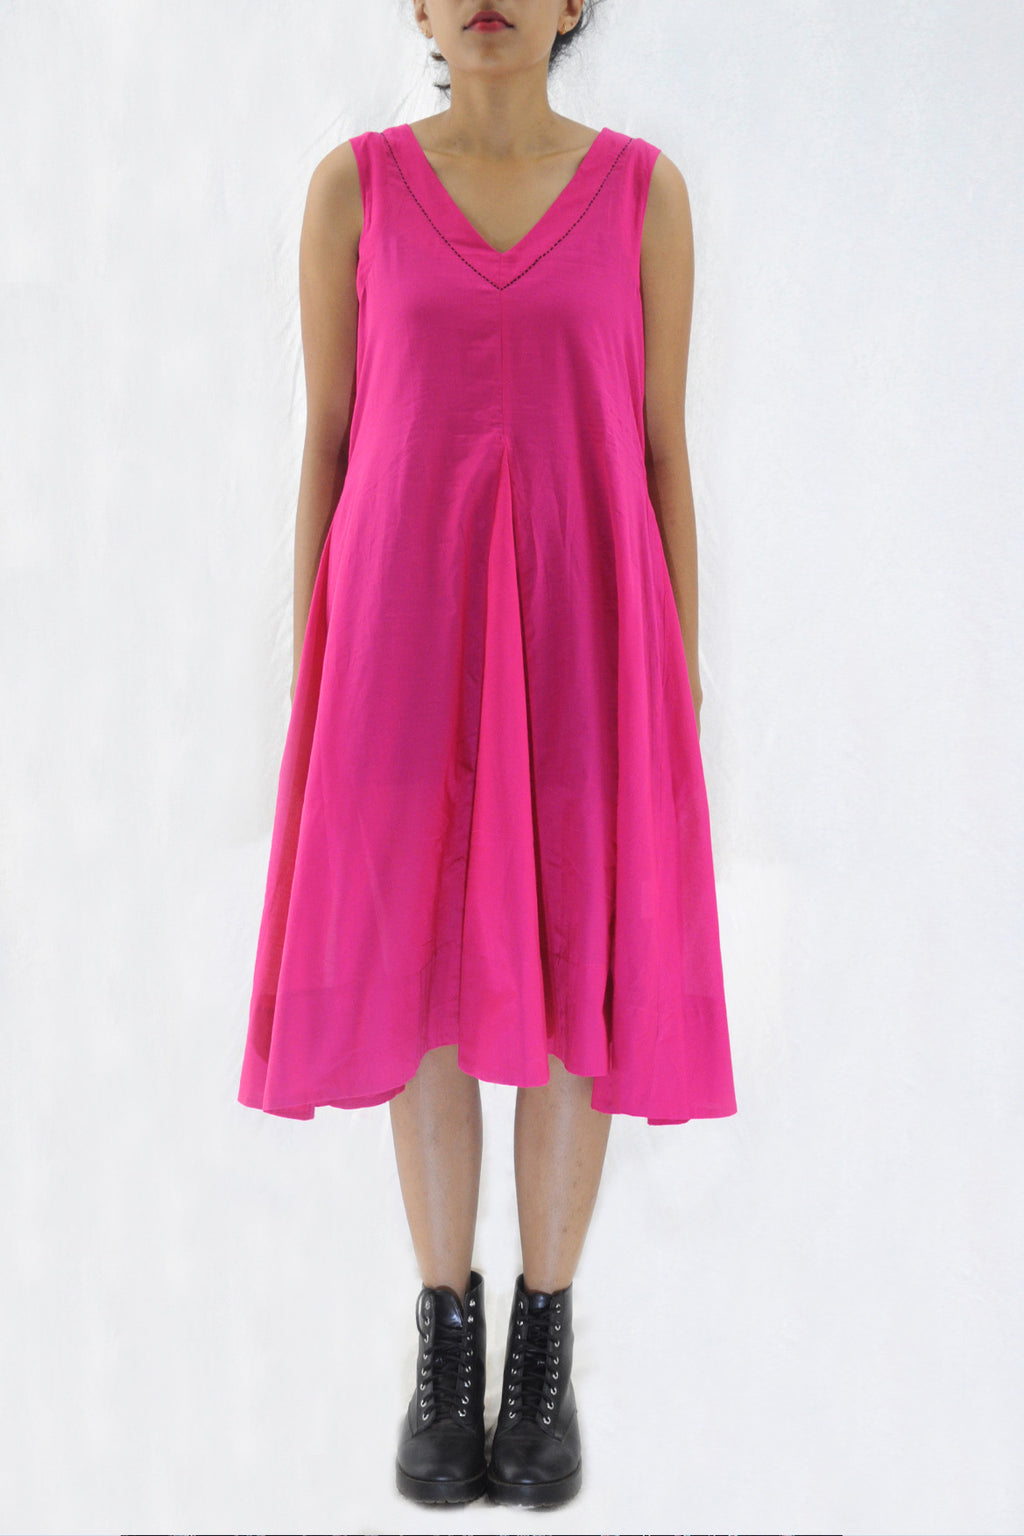 Pink Organic cotton Dress - NALINI - Upasana Design Studio